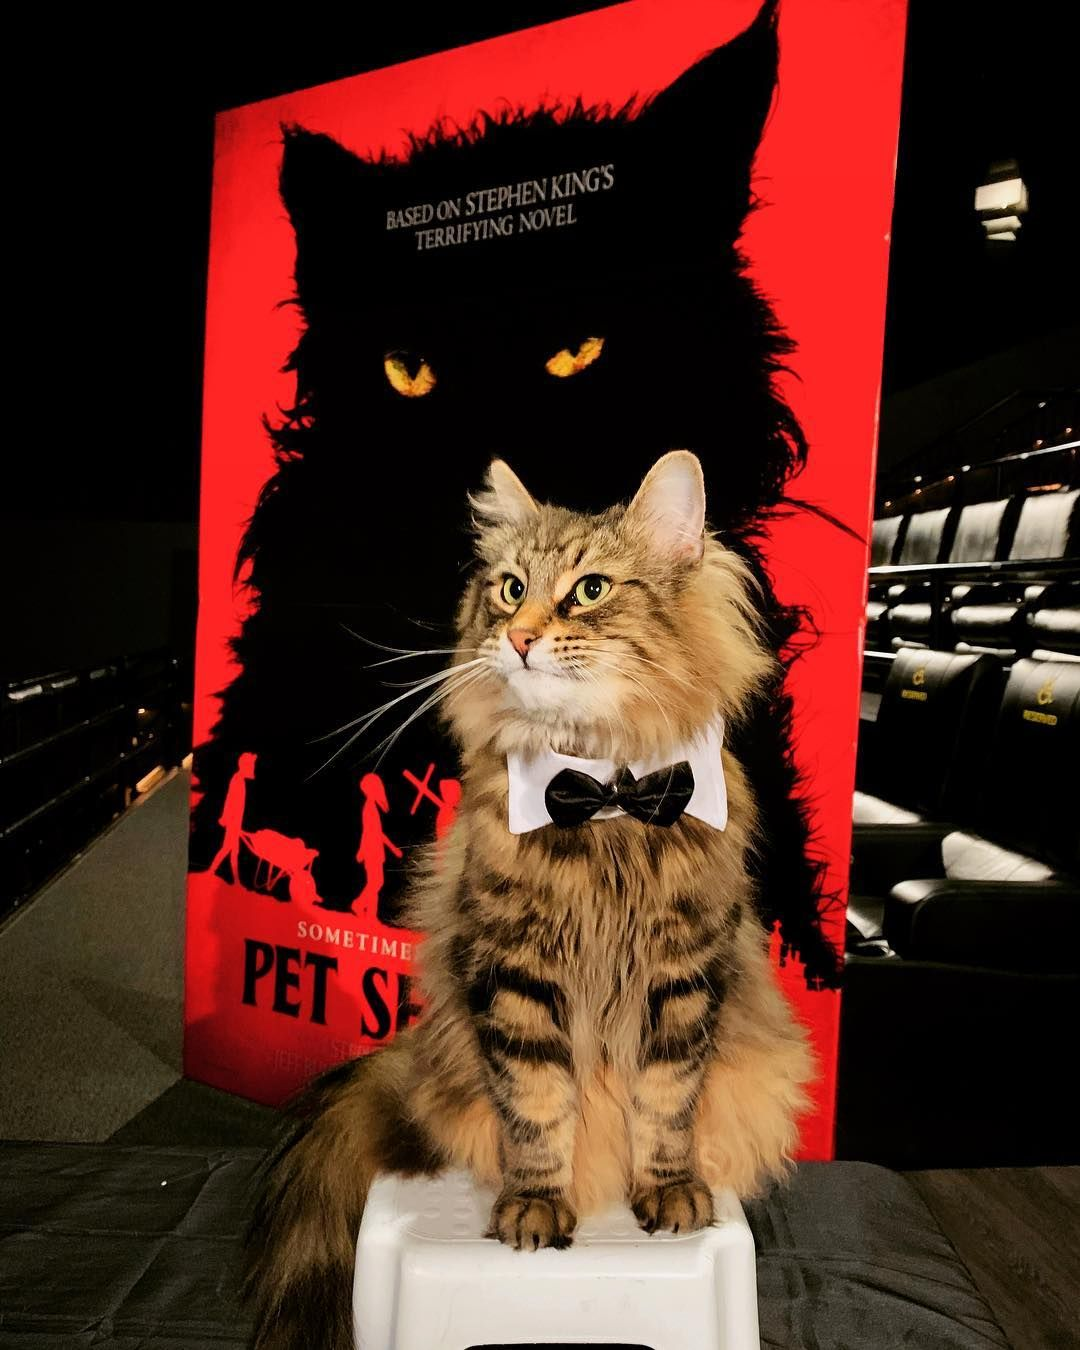 Leo, The Star Cat from 'Pet Sematary' Has Mysteriously